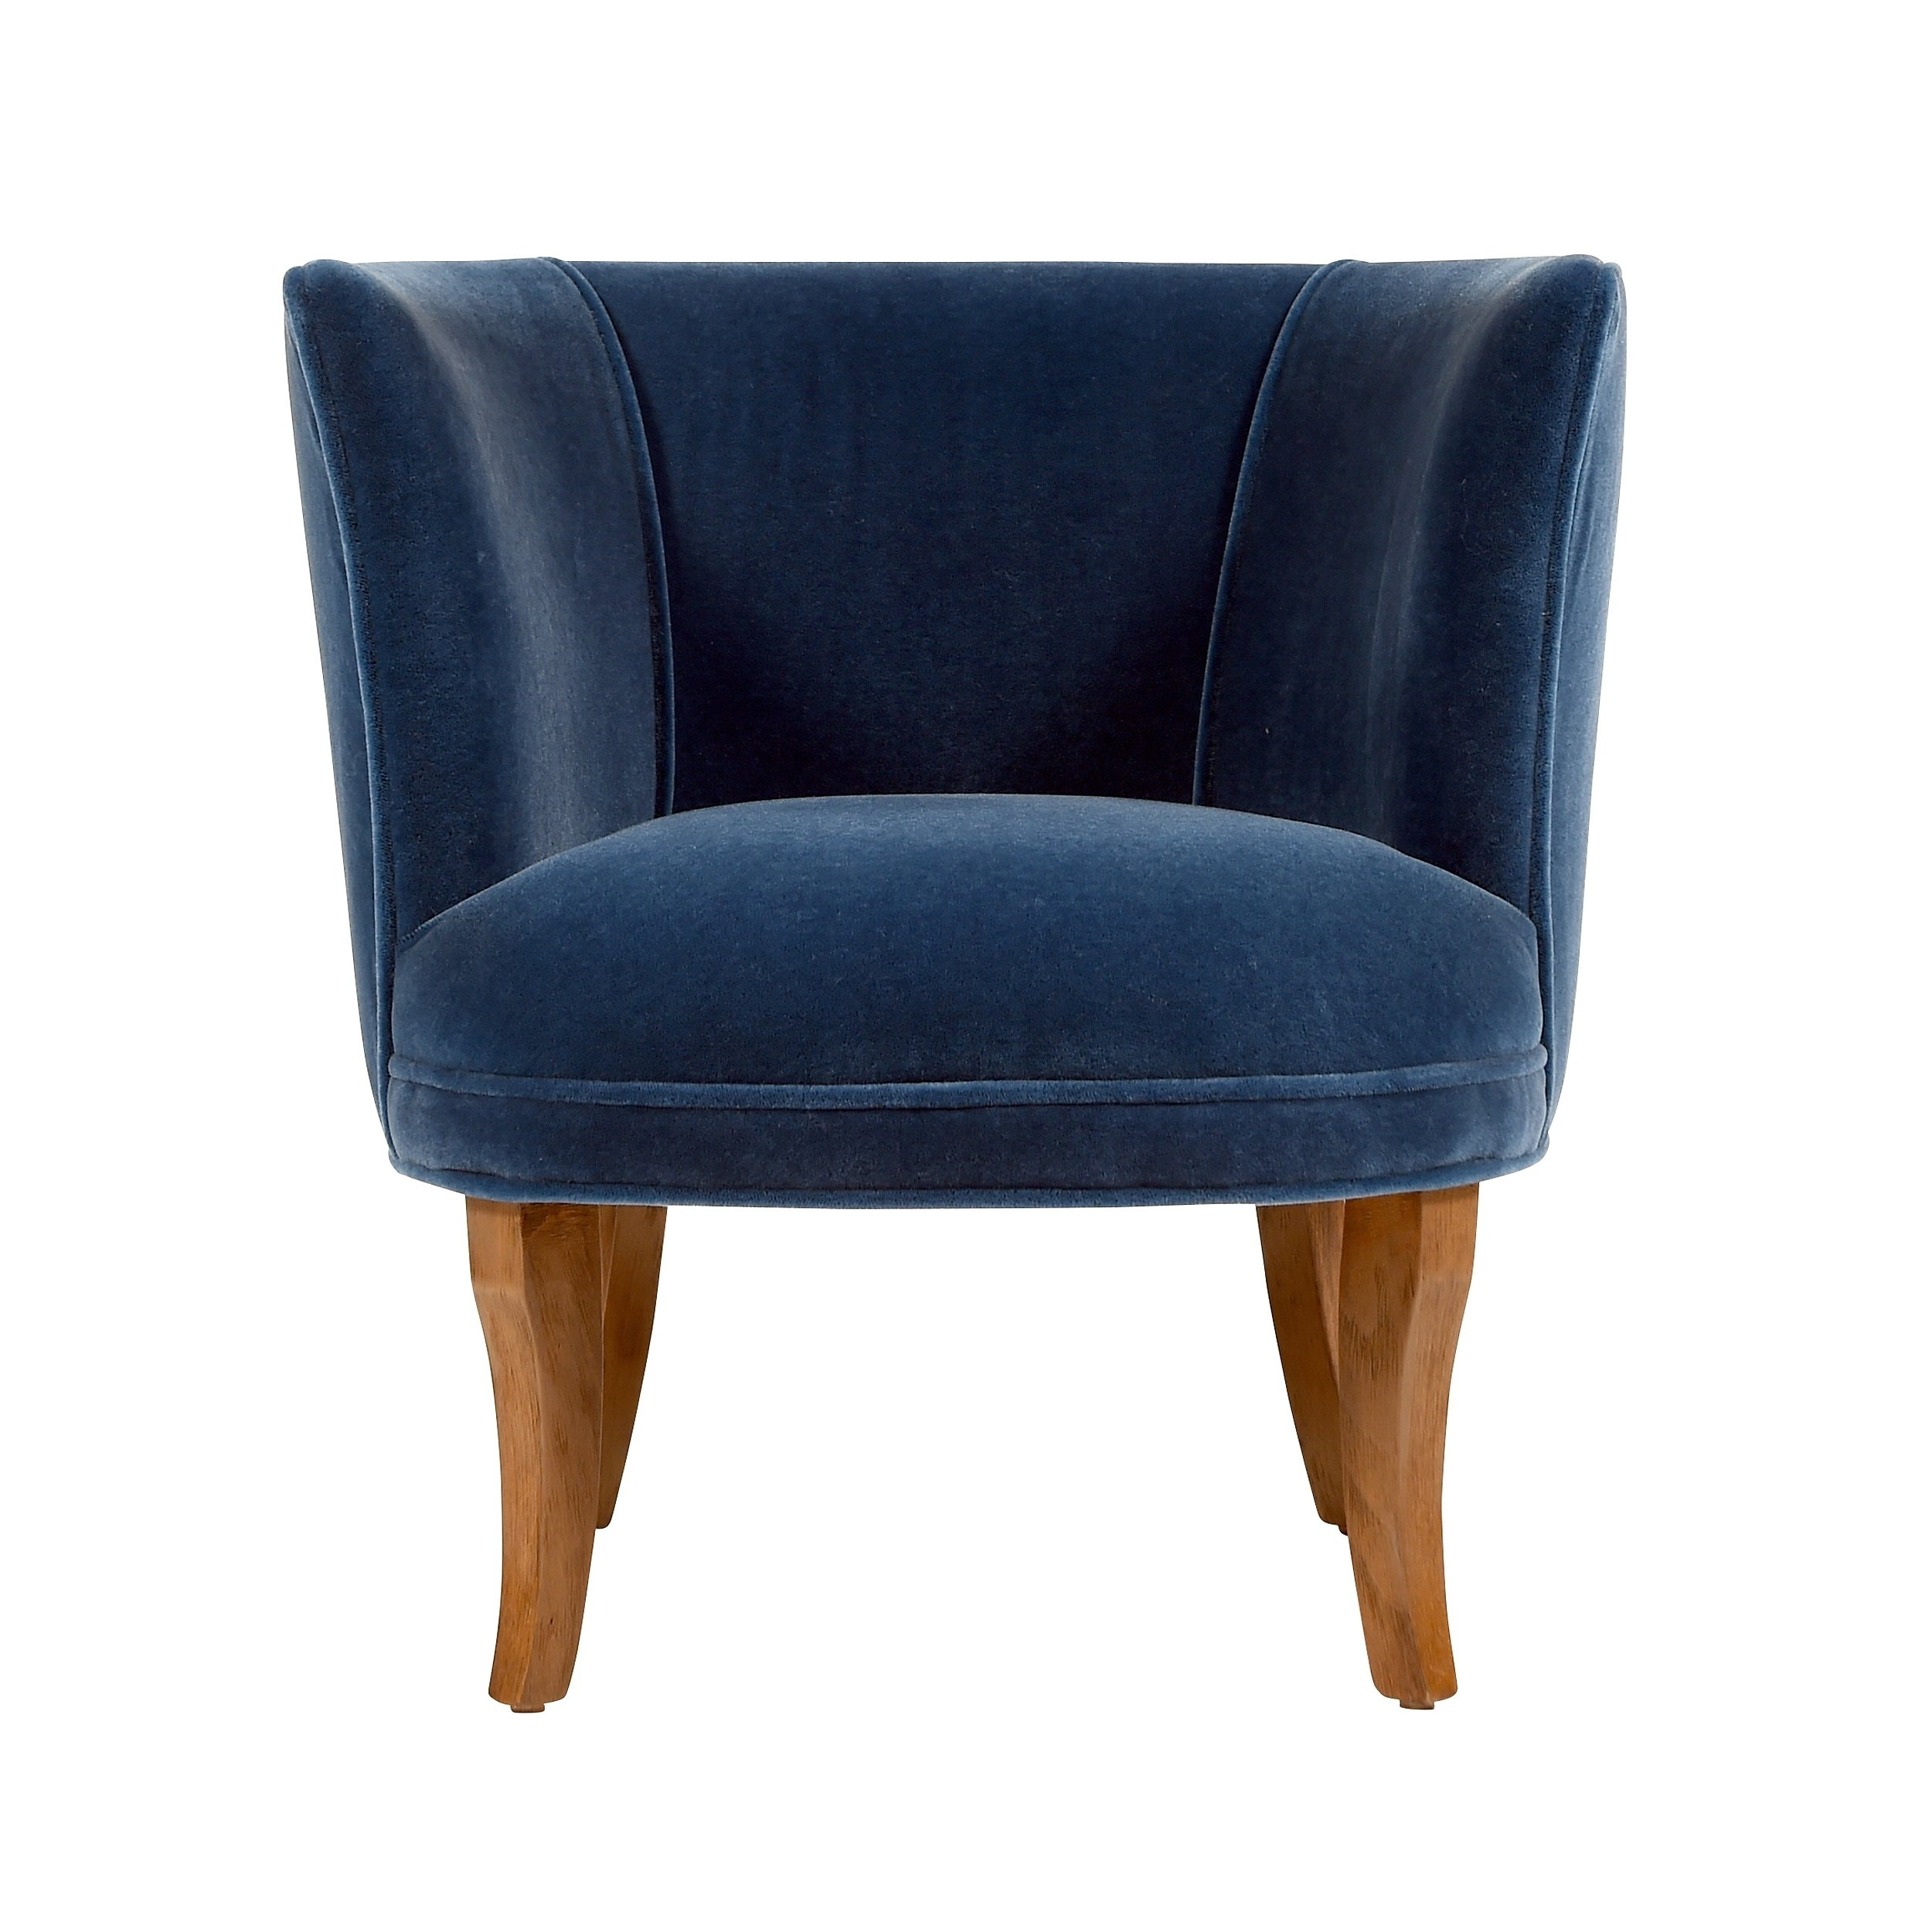 Jaxon Grey Upholstered Side Chairs Within Famous Shop Jaxon Bella Navy Blue Velvet Upholstered Armchair – Free (#8 of 20)